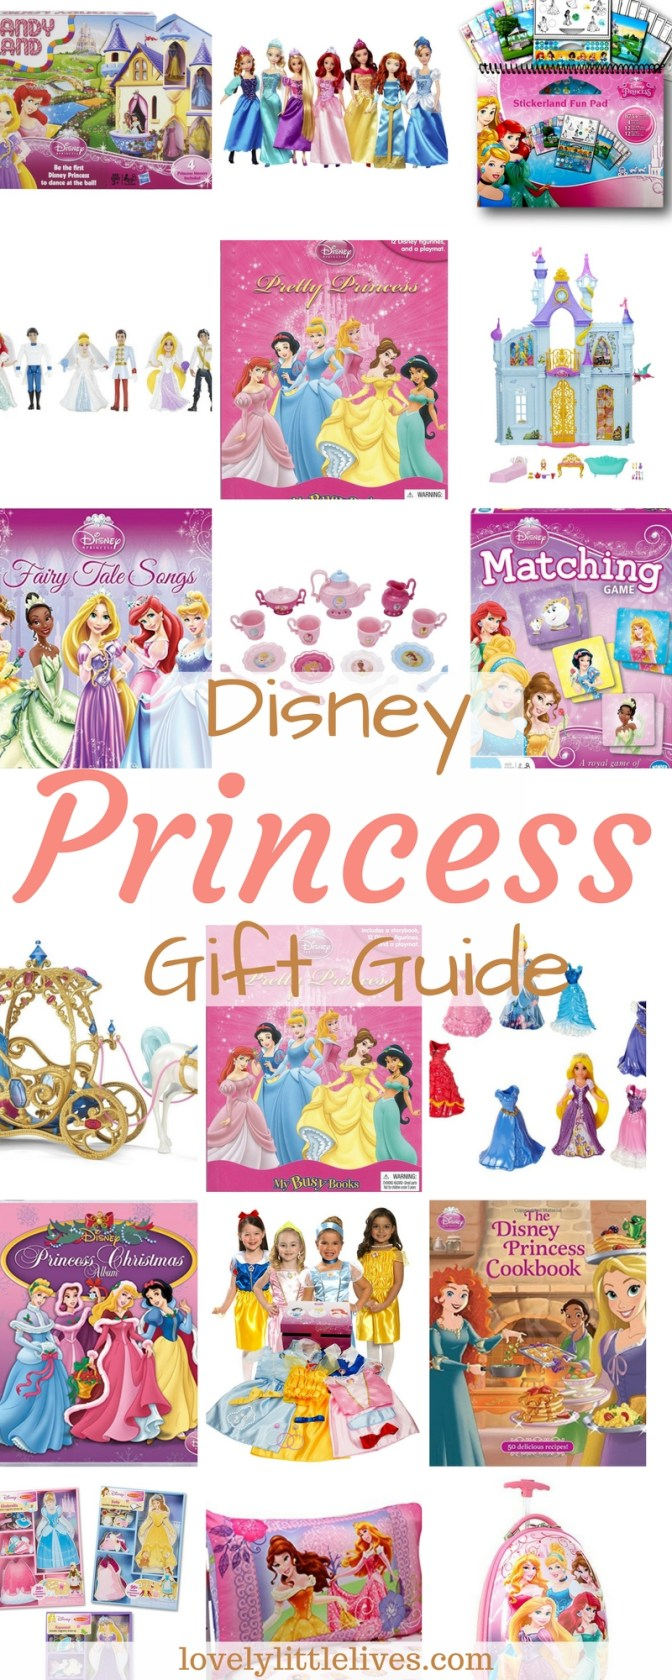 Disney Princess Gift Guide for Your Little Princess